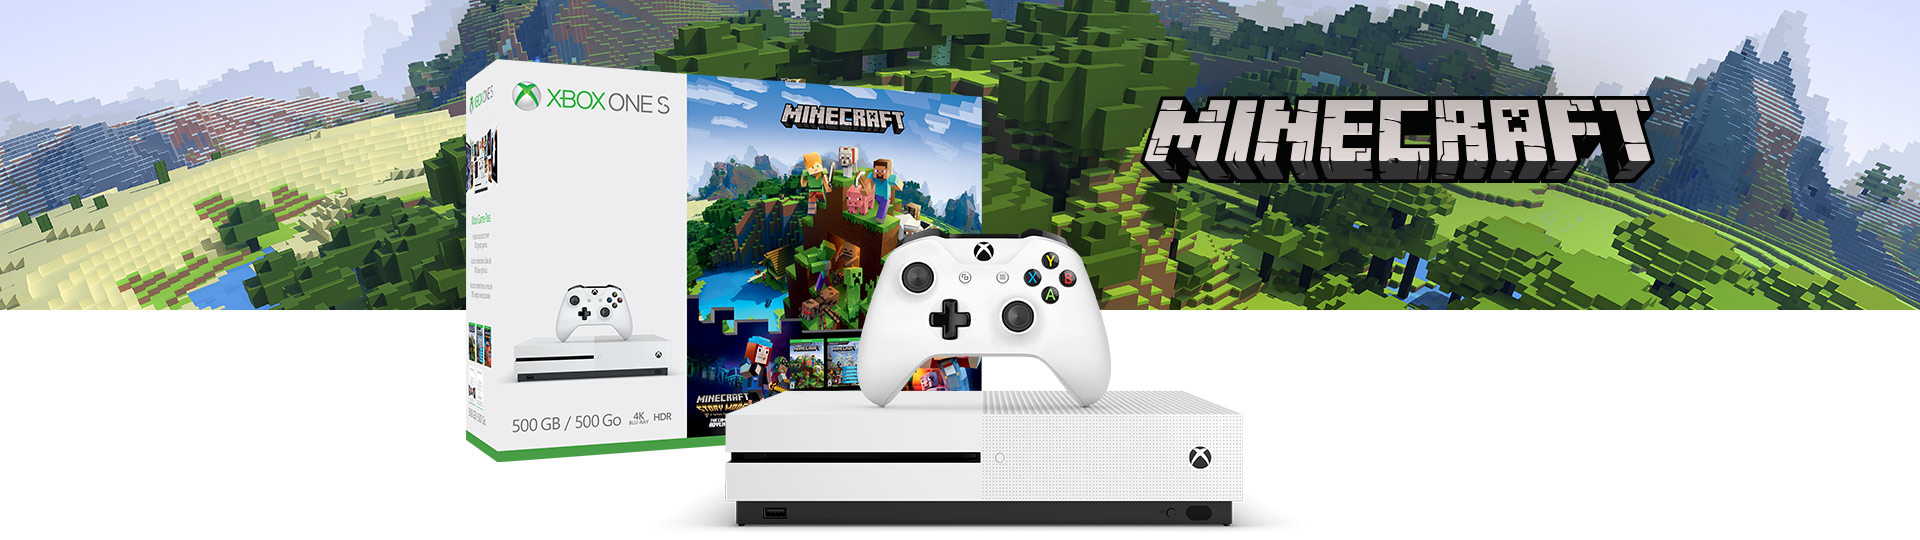 Zestaw Minecraft Complete Adventure z konsolą Xbox One S (500 GB)